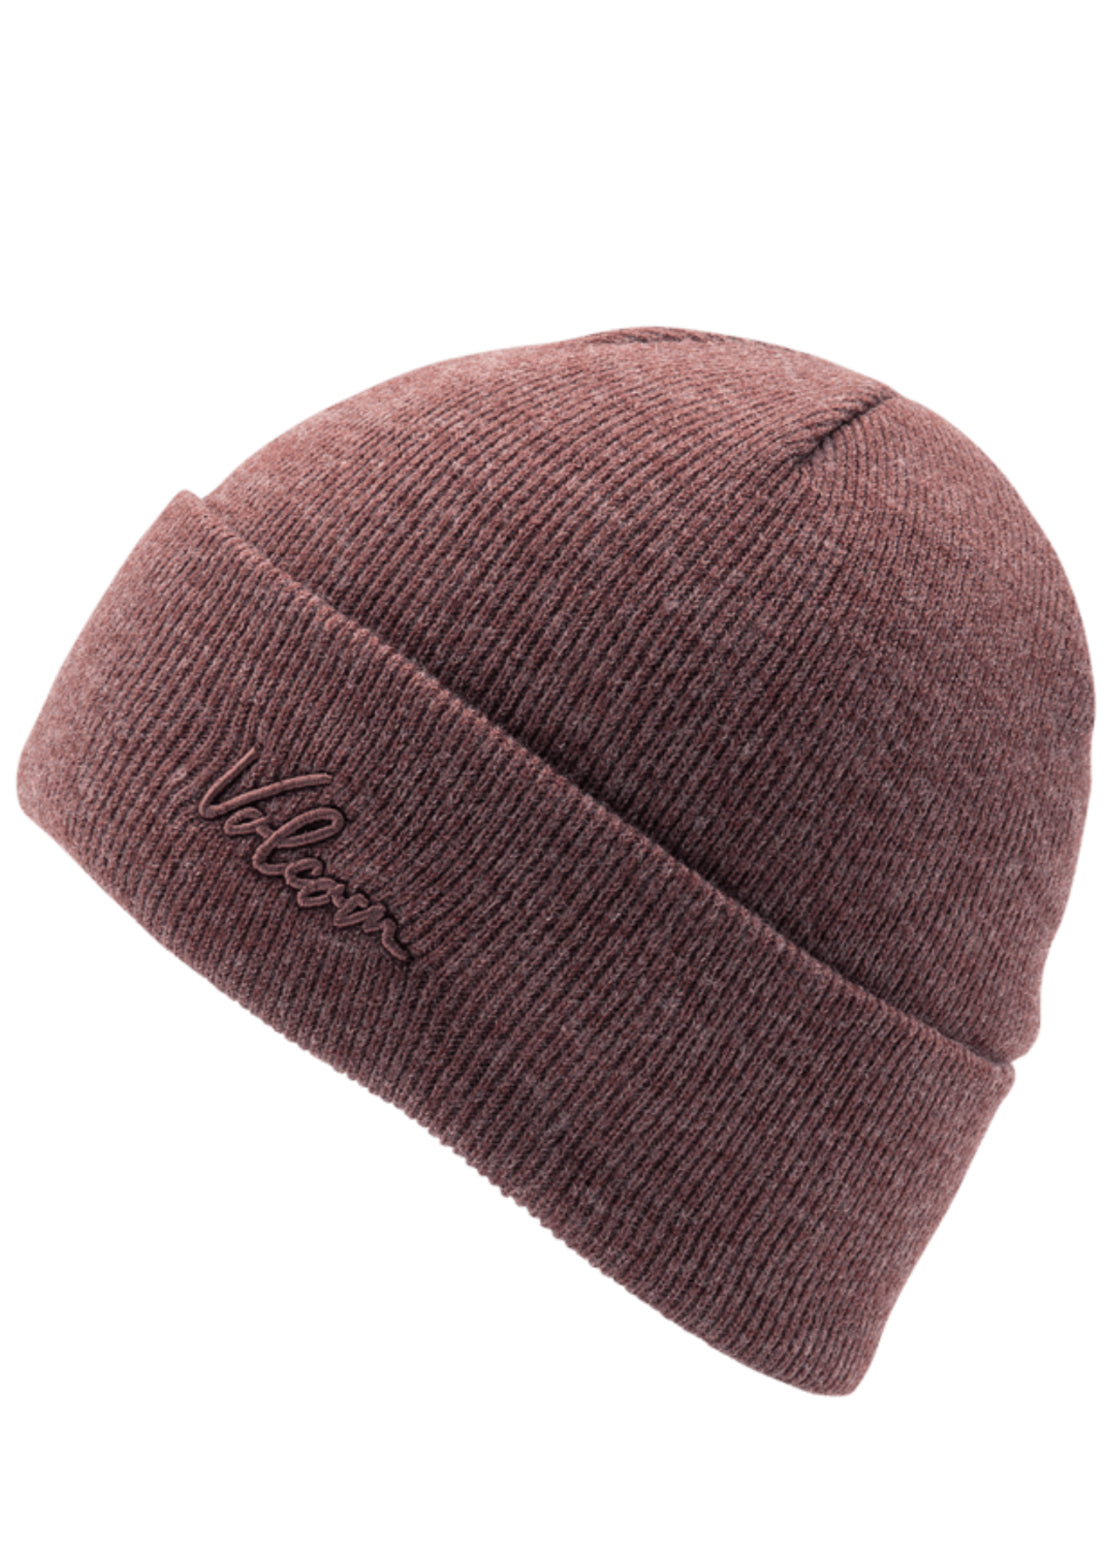 Volcom Women's Favorite Beanie Rose Wood